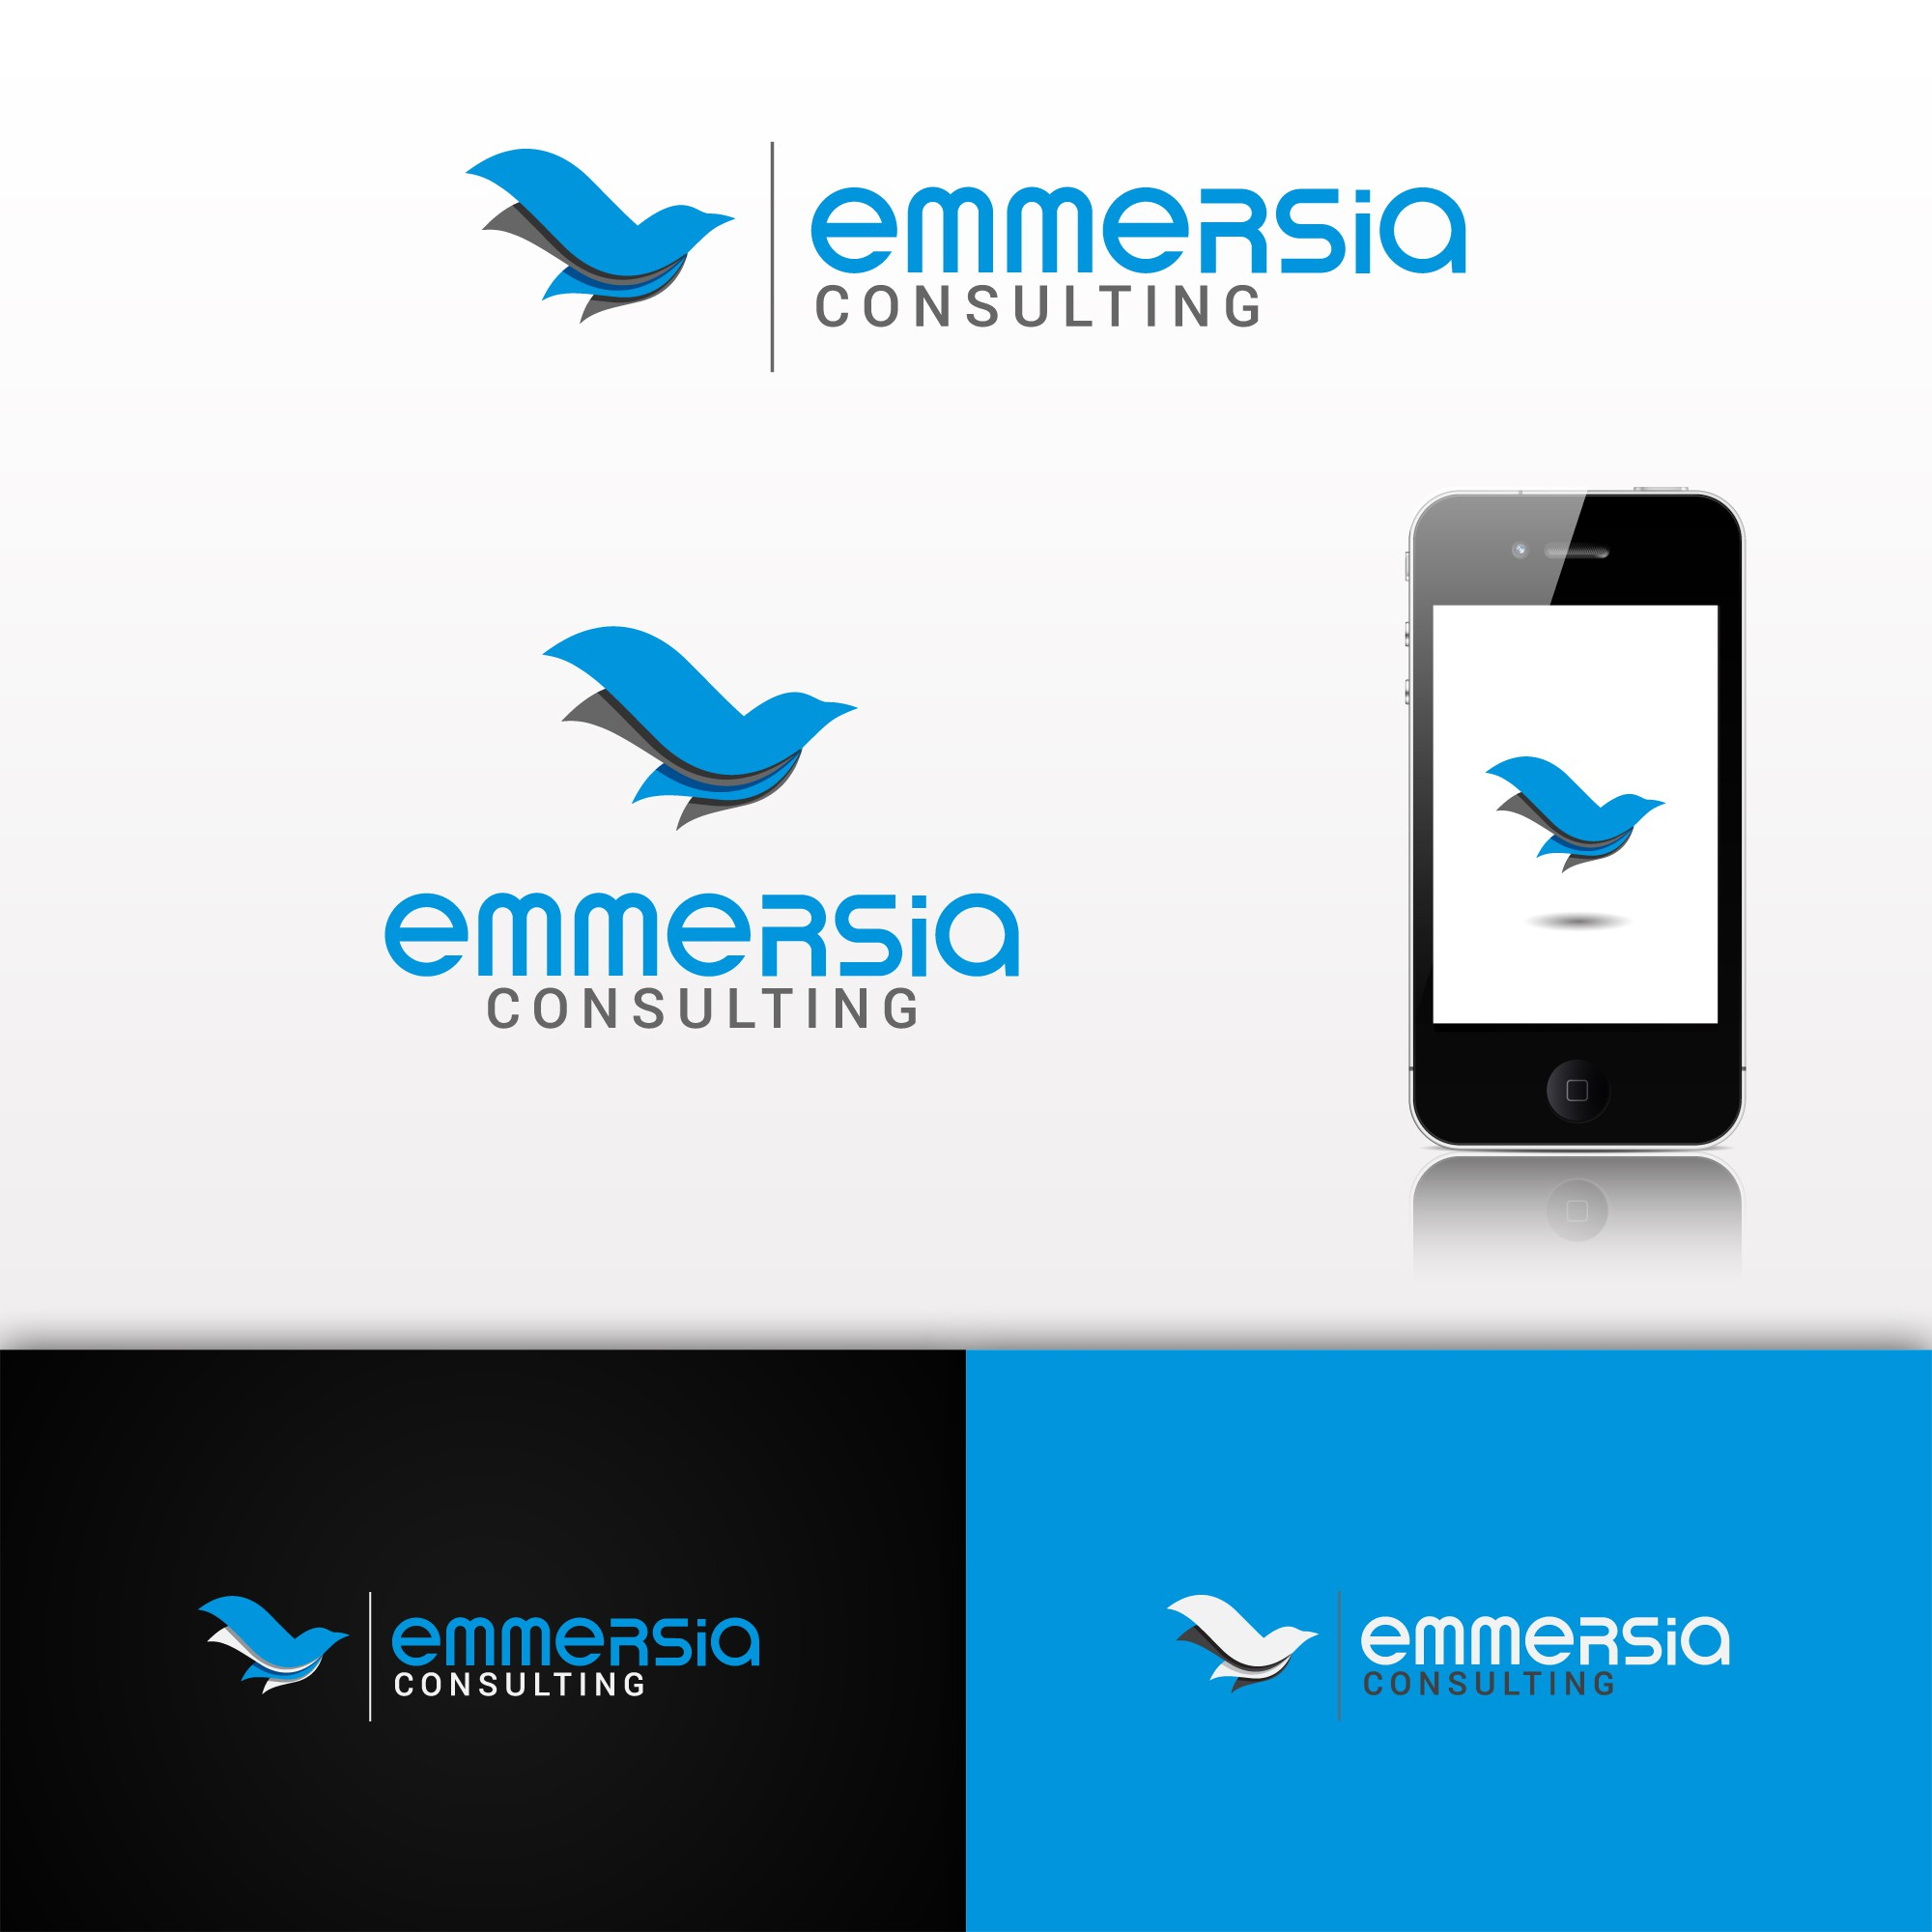 Help us create a modern, vibrant logo for an exciting new company!